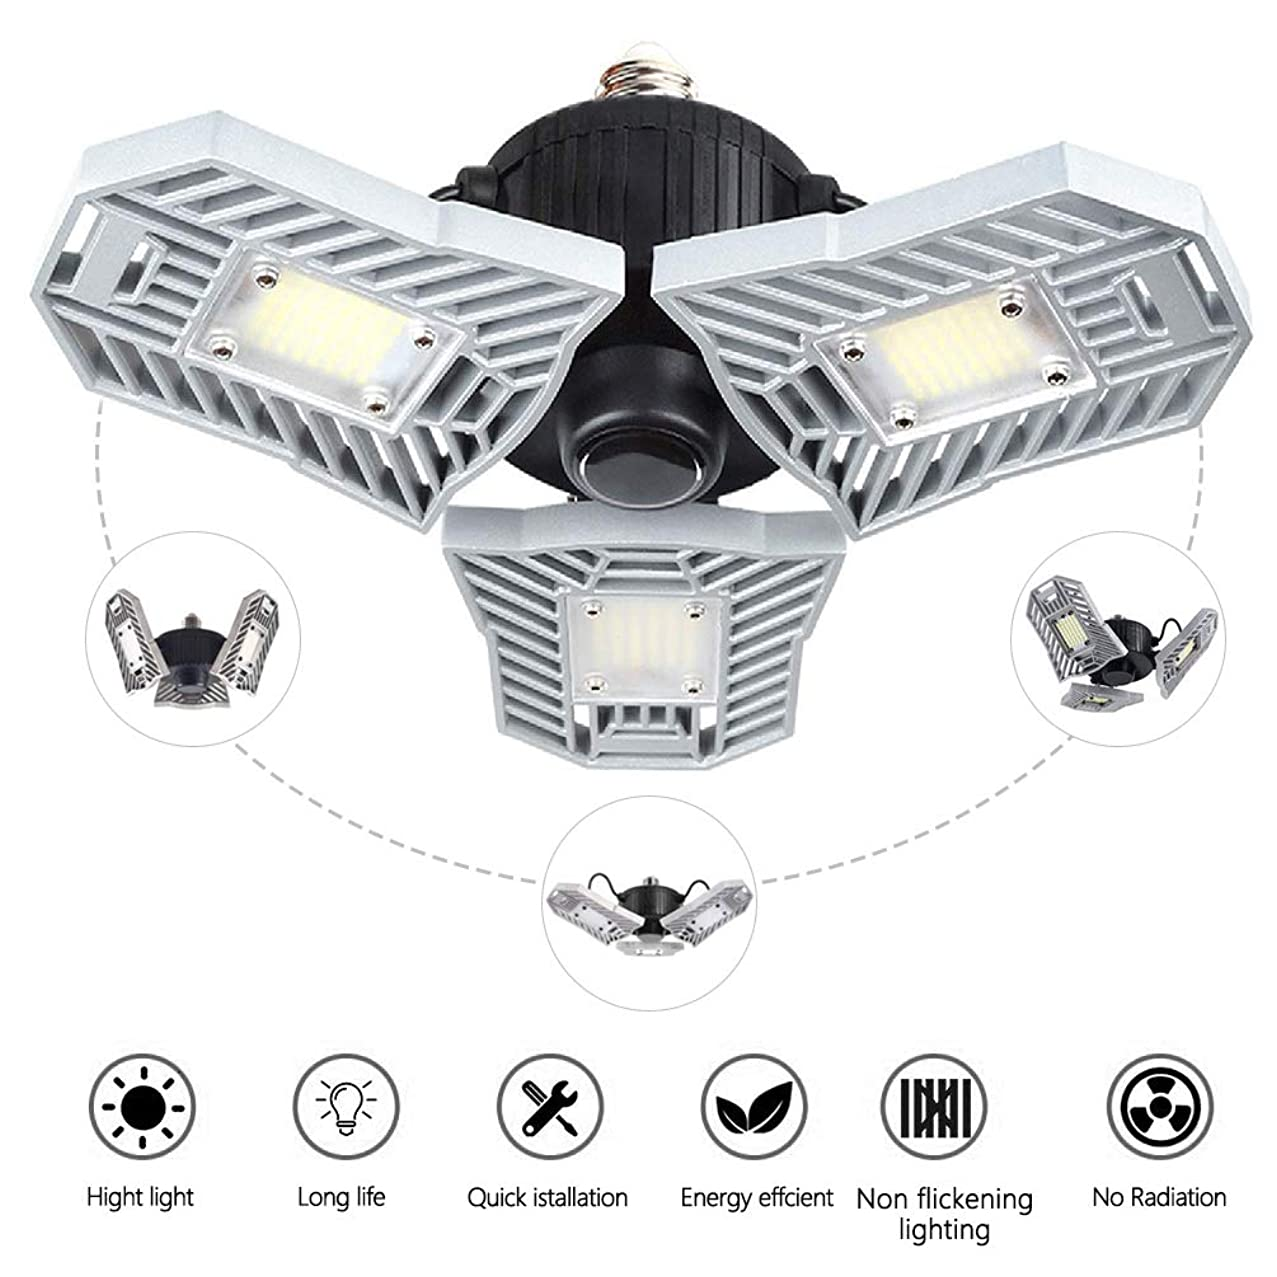 Ceiling Light,Led Garage Lights 60W Deformable E26/E27 6000LM,for Workshop,Trilight Shoplight,Industrial Lamp,Barn,Cellar (No Motion Activated)